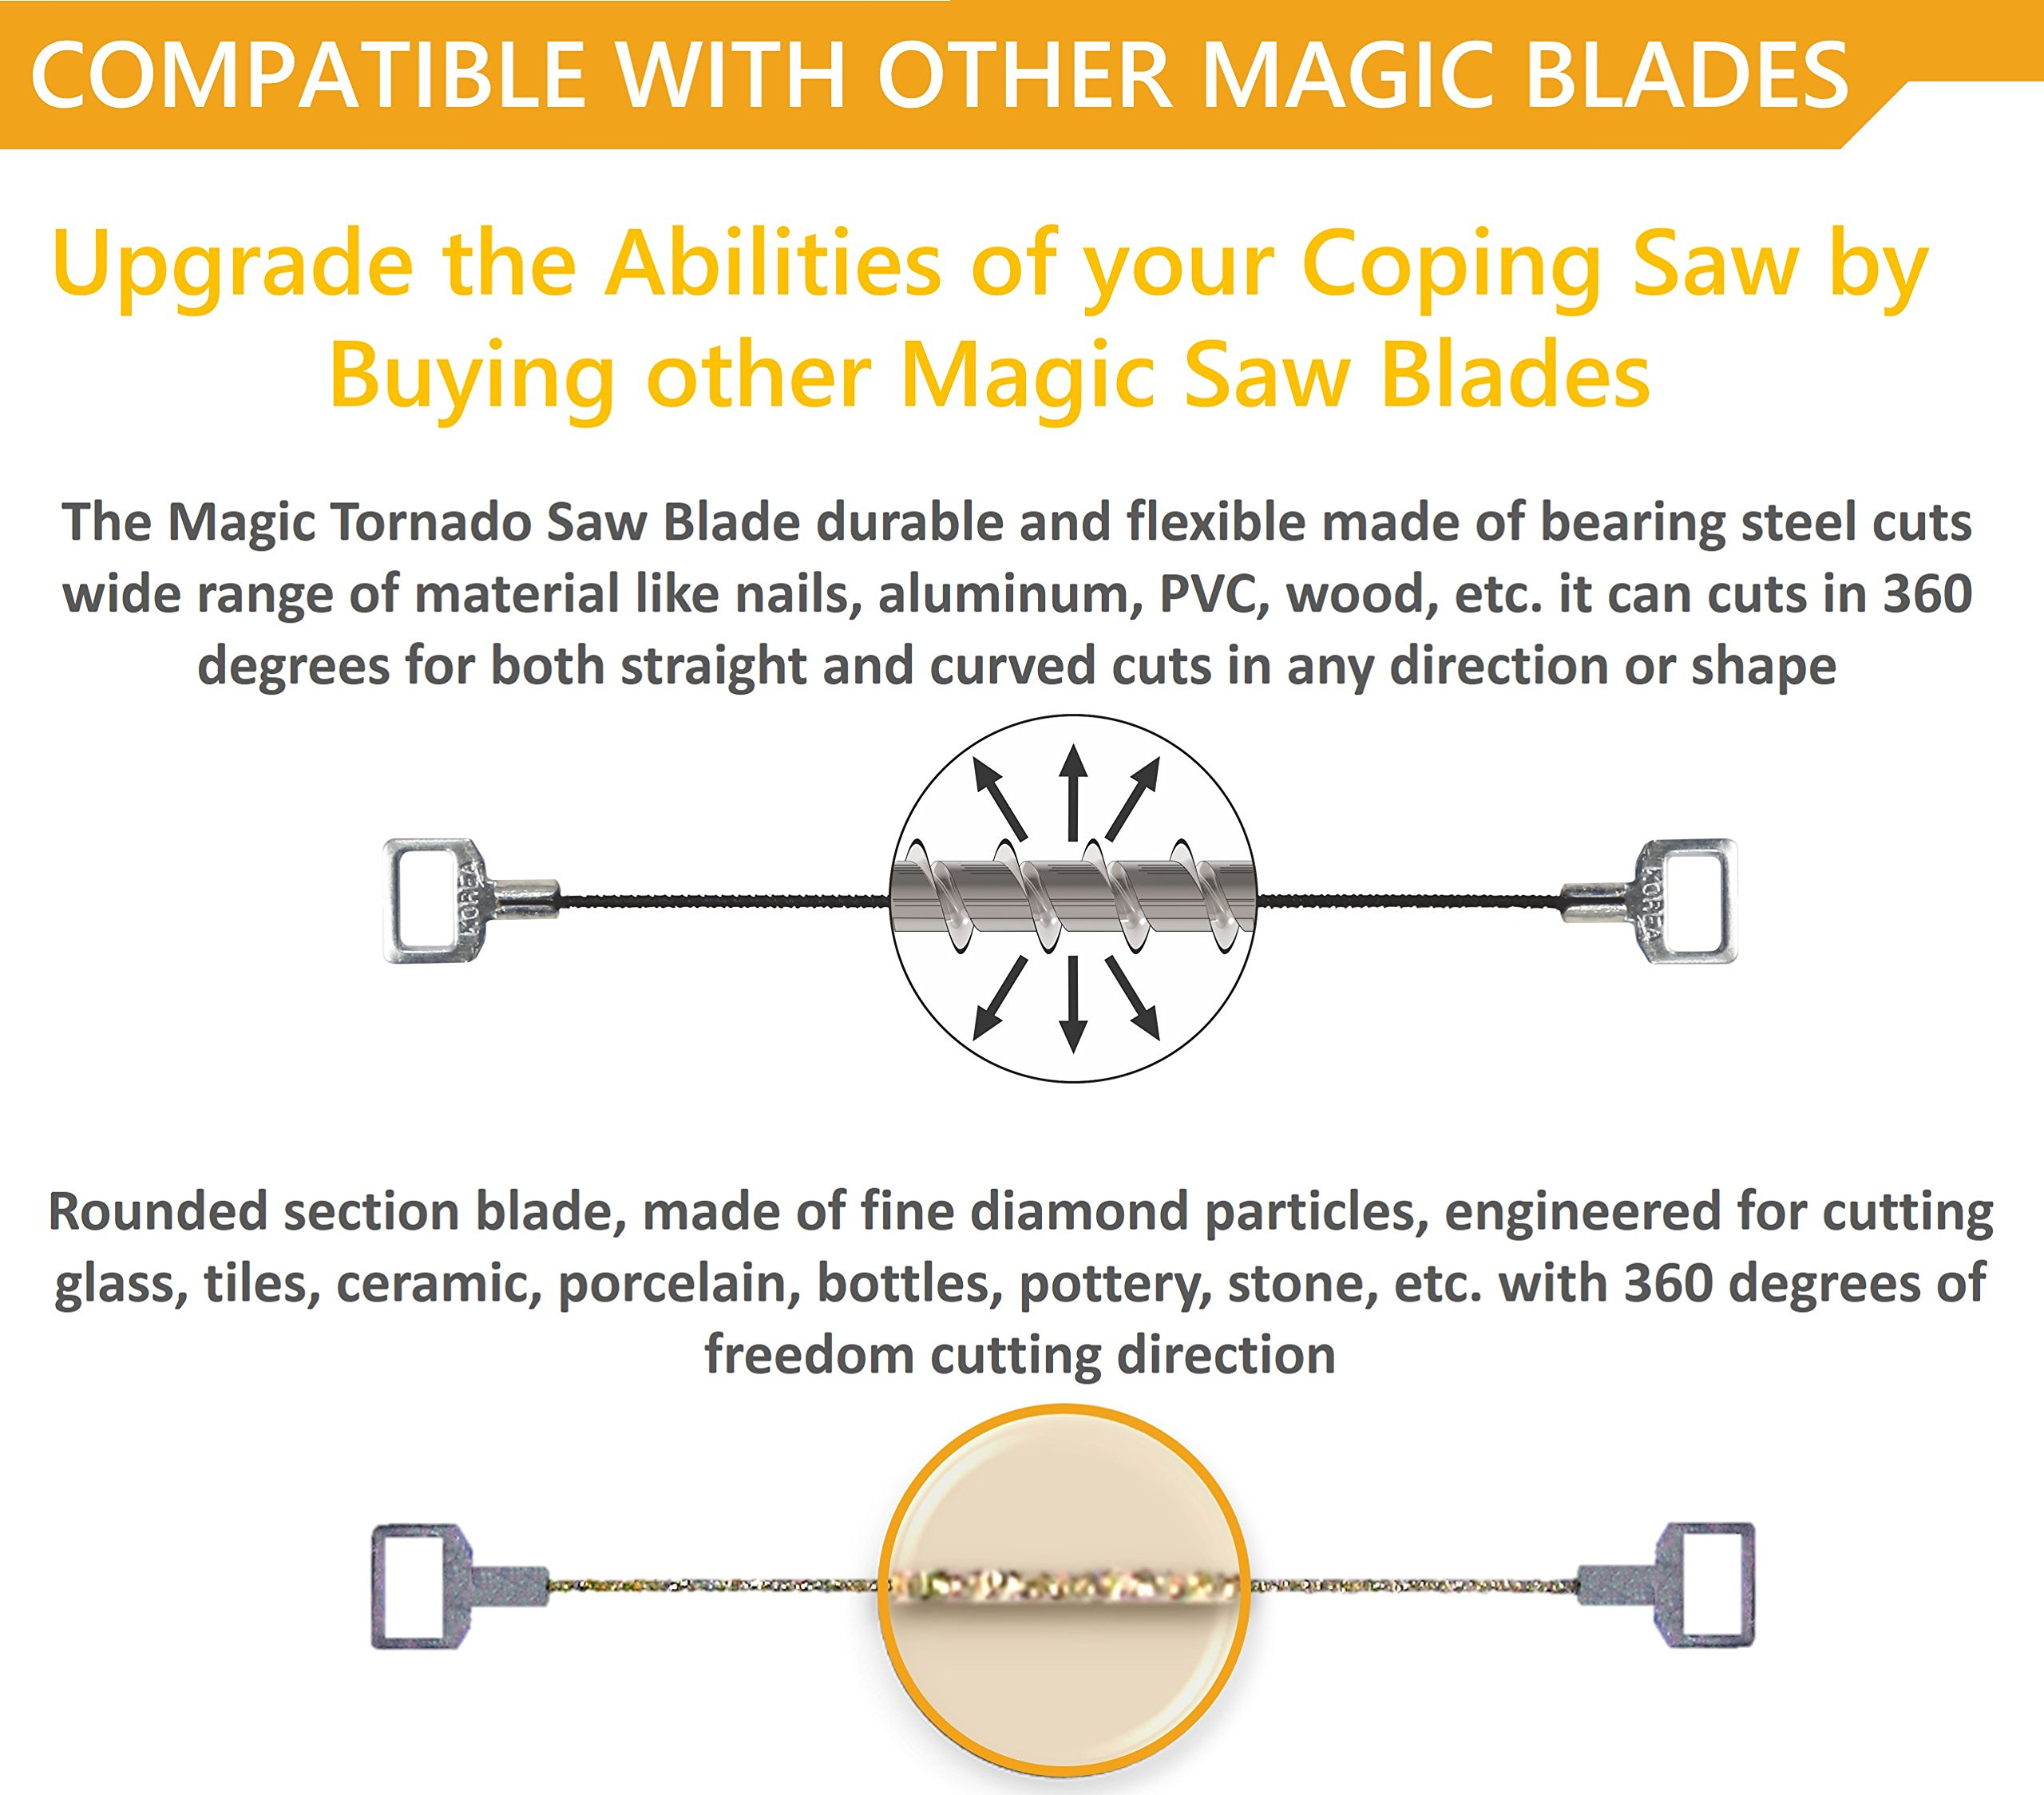 Original Magic Coping Saw with 6 inch High Carbon Steel Pins Blades, a Heavy Duty H shape Metal Frame Works as Fret Saw, Hacksaw, and Pruning Saw & Suitable to Cut Wood, Plastic, PVC, Aluminum, Nails by Amazing Tools (Image #7)